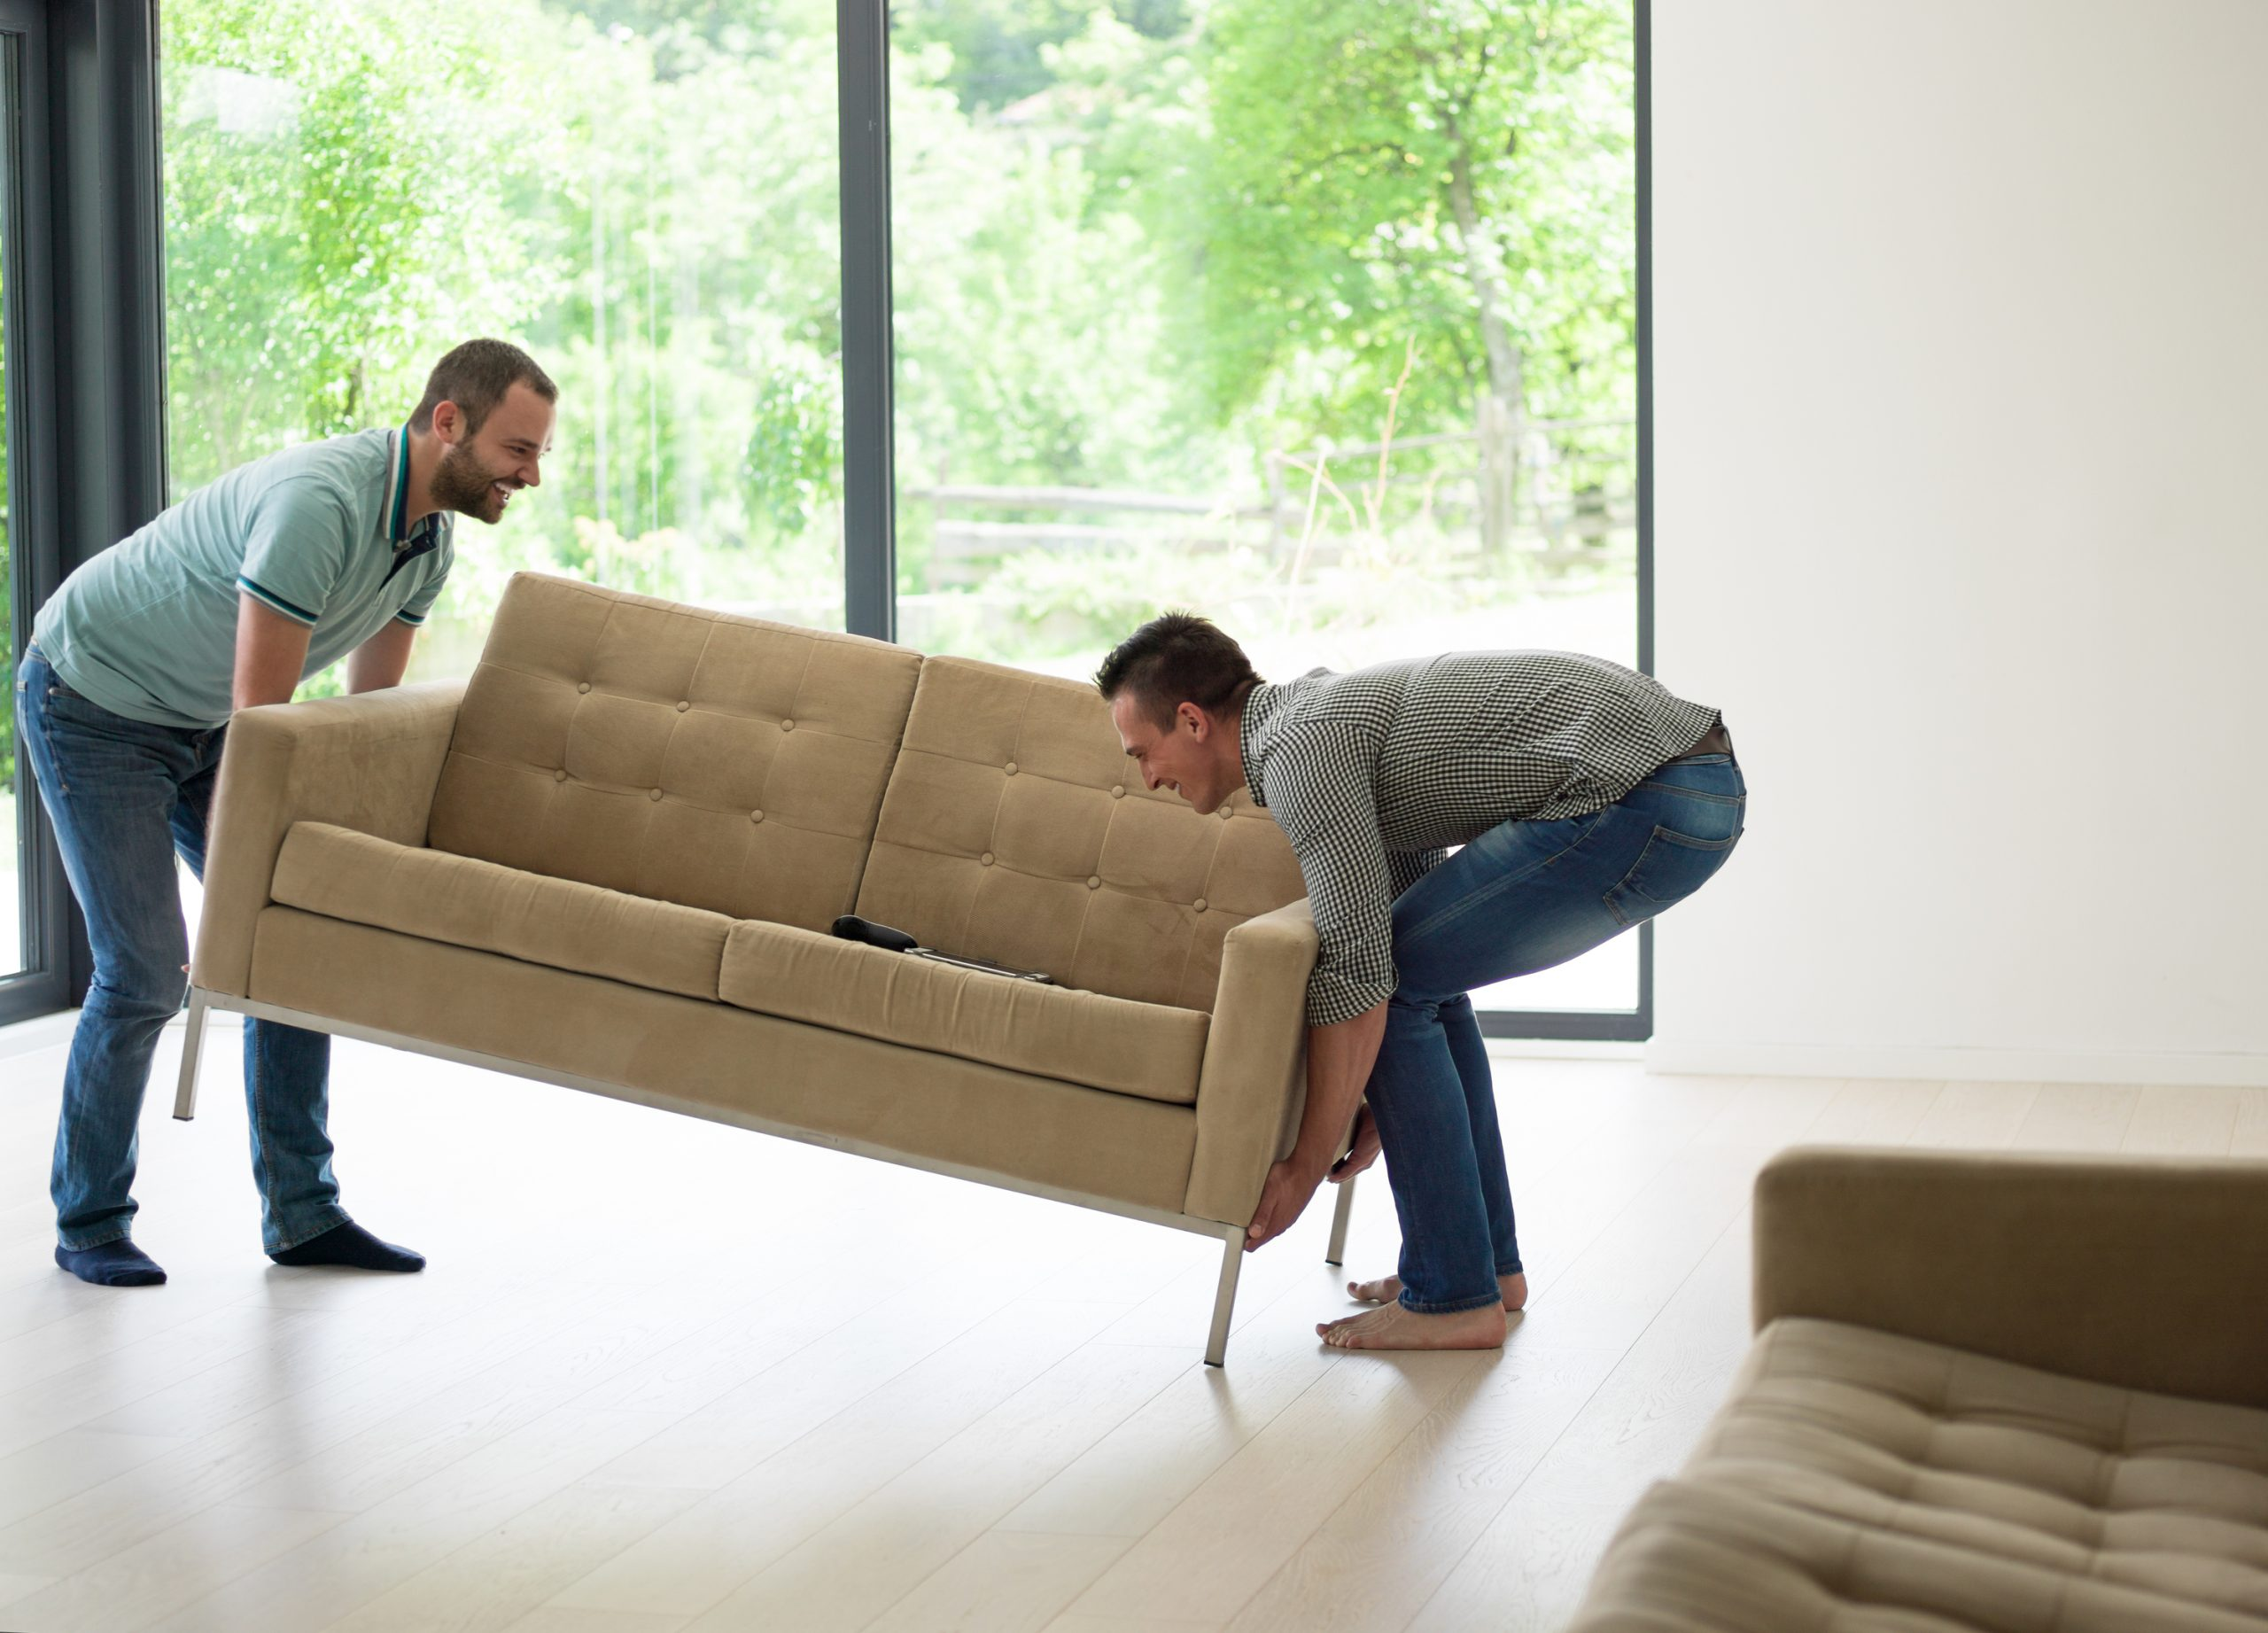 two young men carry the sofa in front of window to illustrate How To Measure For A Couch